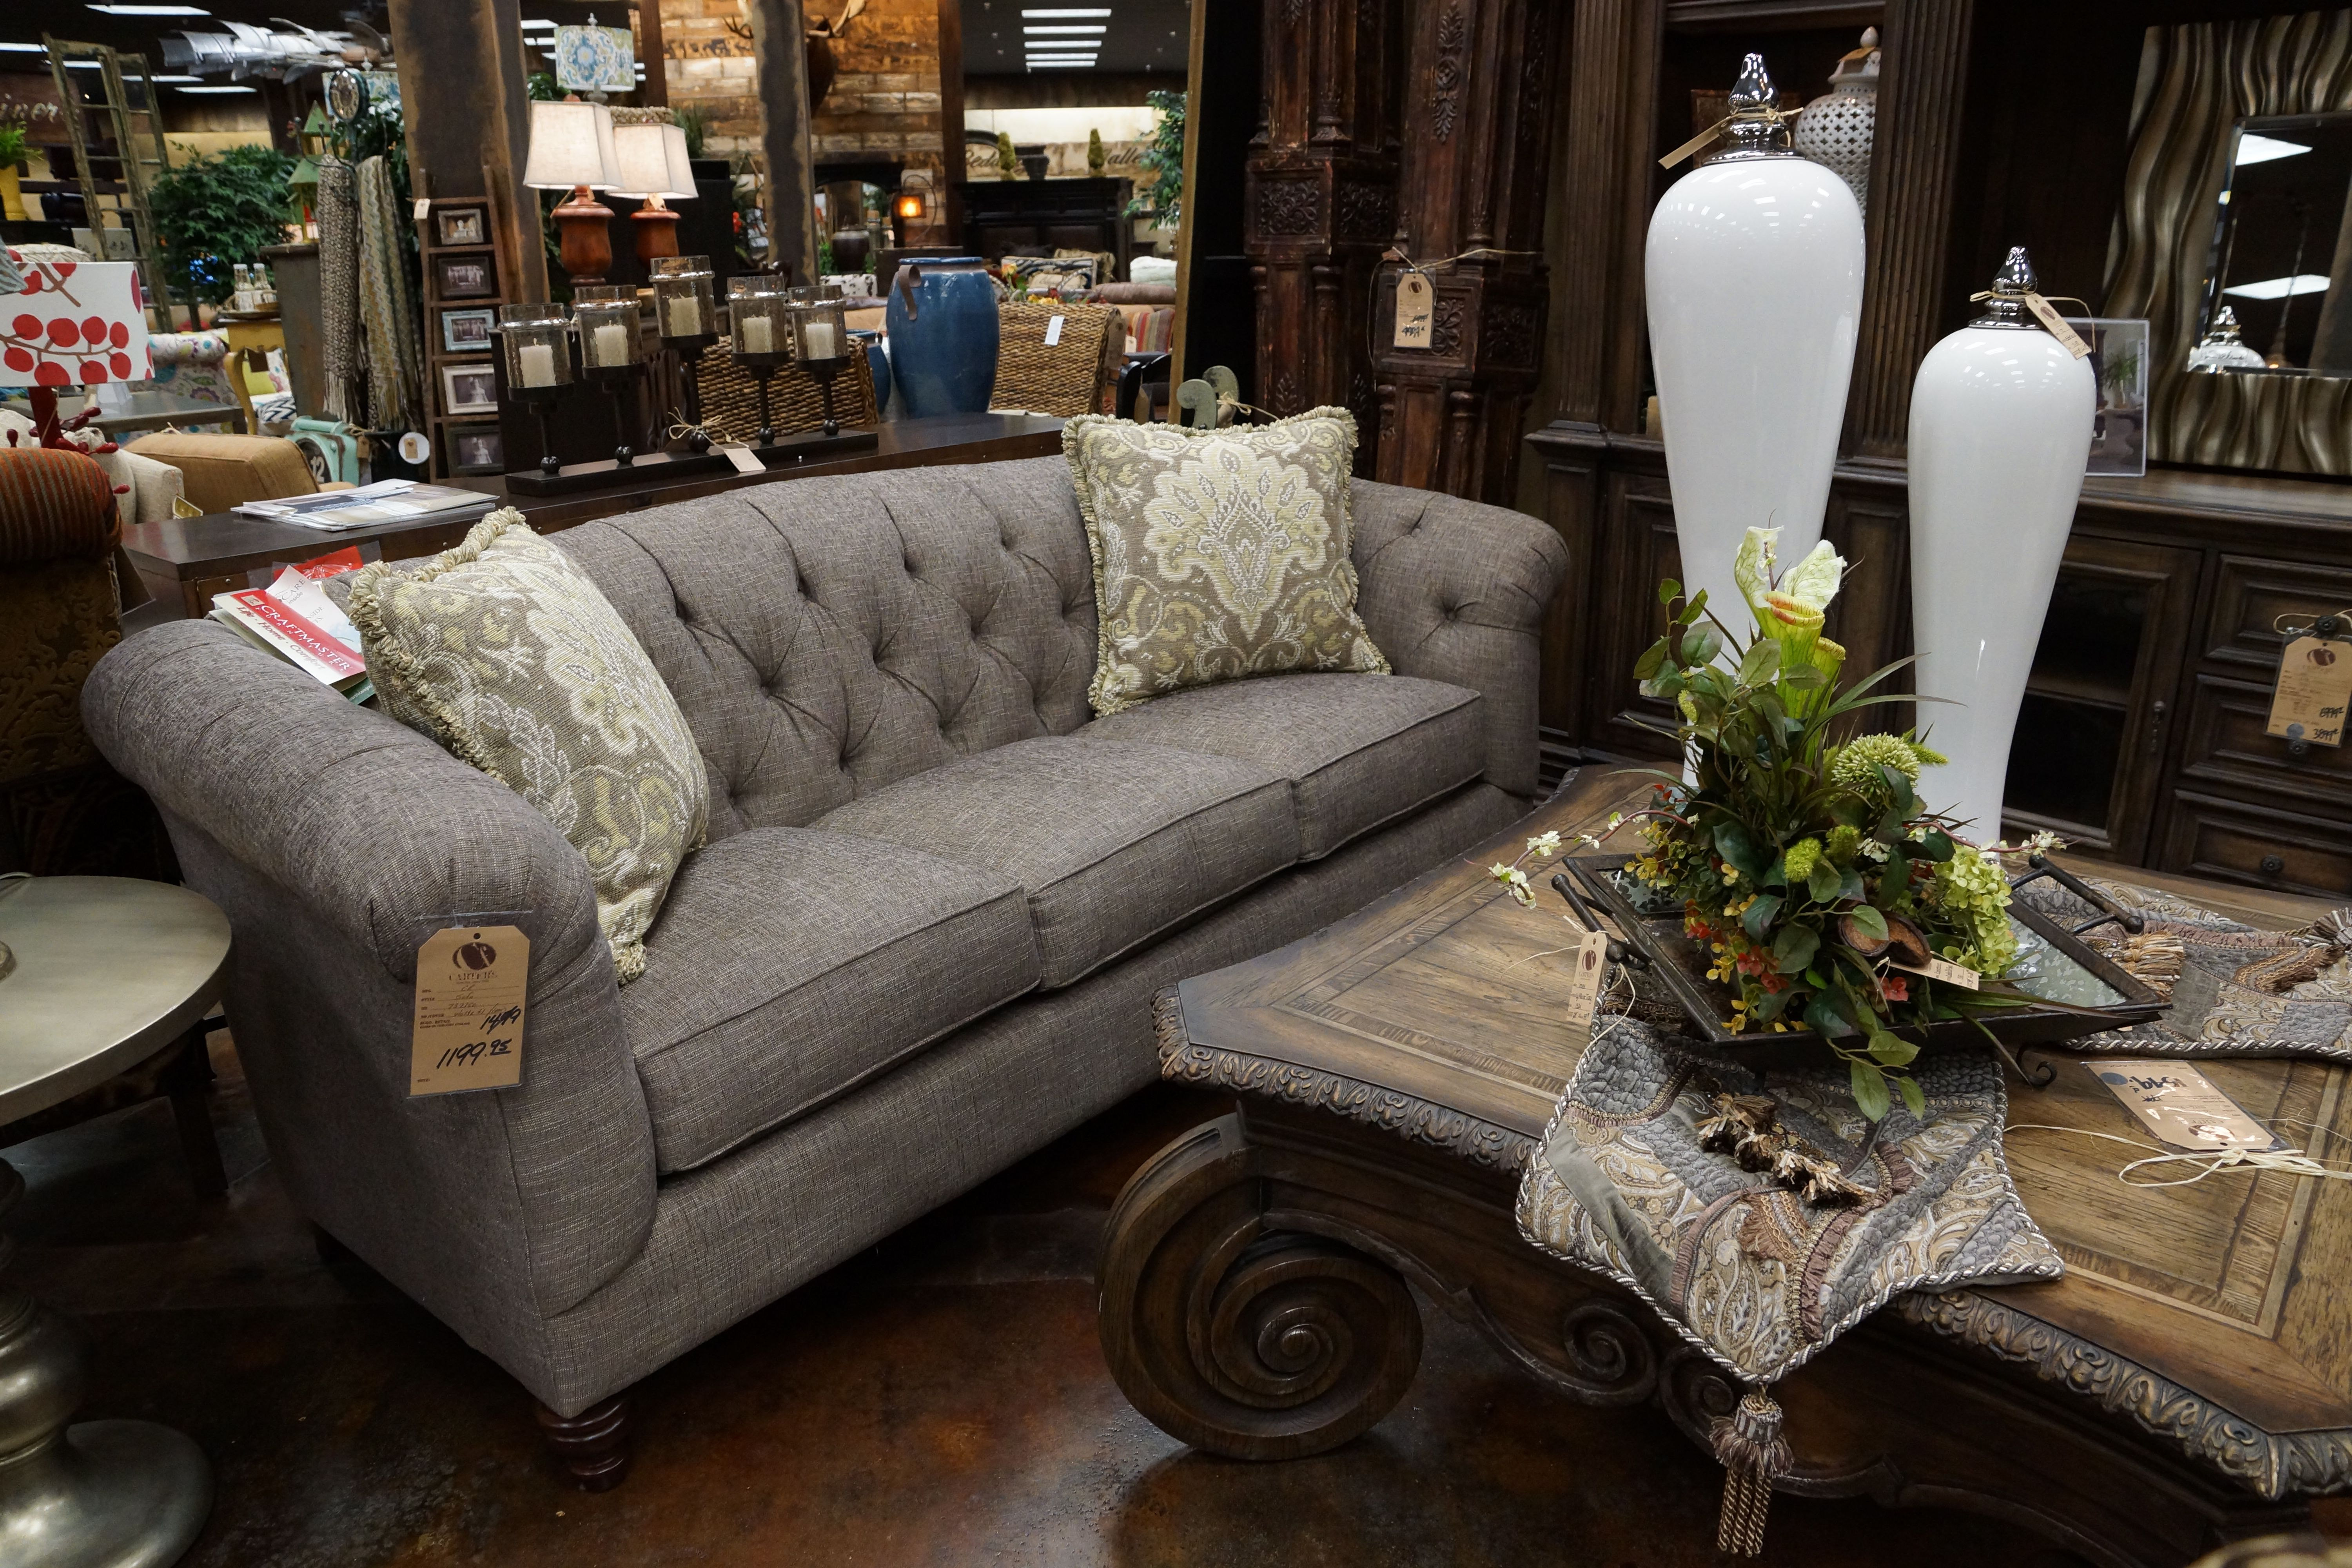 Awesome Available At Carteru0027s Furniture, Midland, Texas 432 682 2843 Http:/